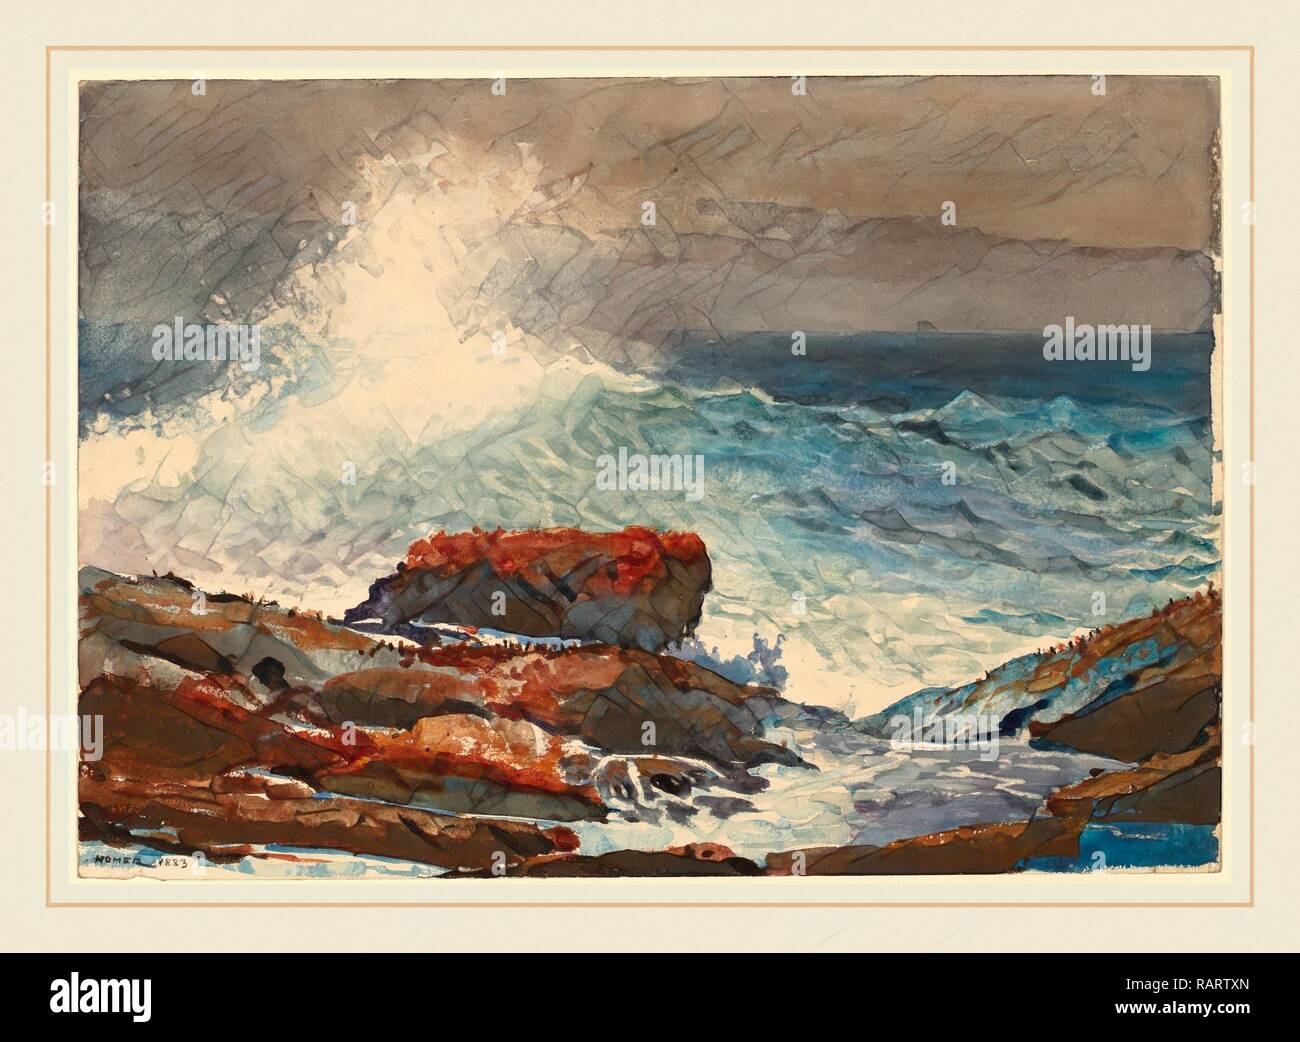 Winslow Homer (American, 1836-1910), Incoming Tide, Scarboro, Maine, 1883, watercolor. Reimagined by Gibon. Classic reimagined - Stock Image